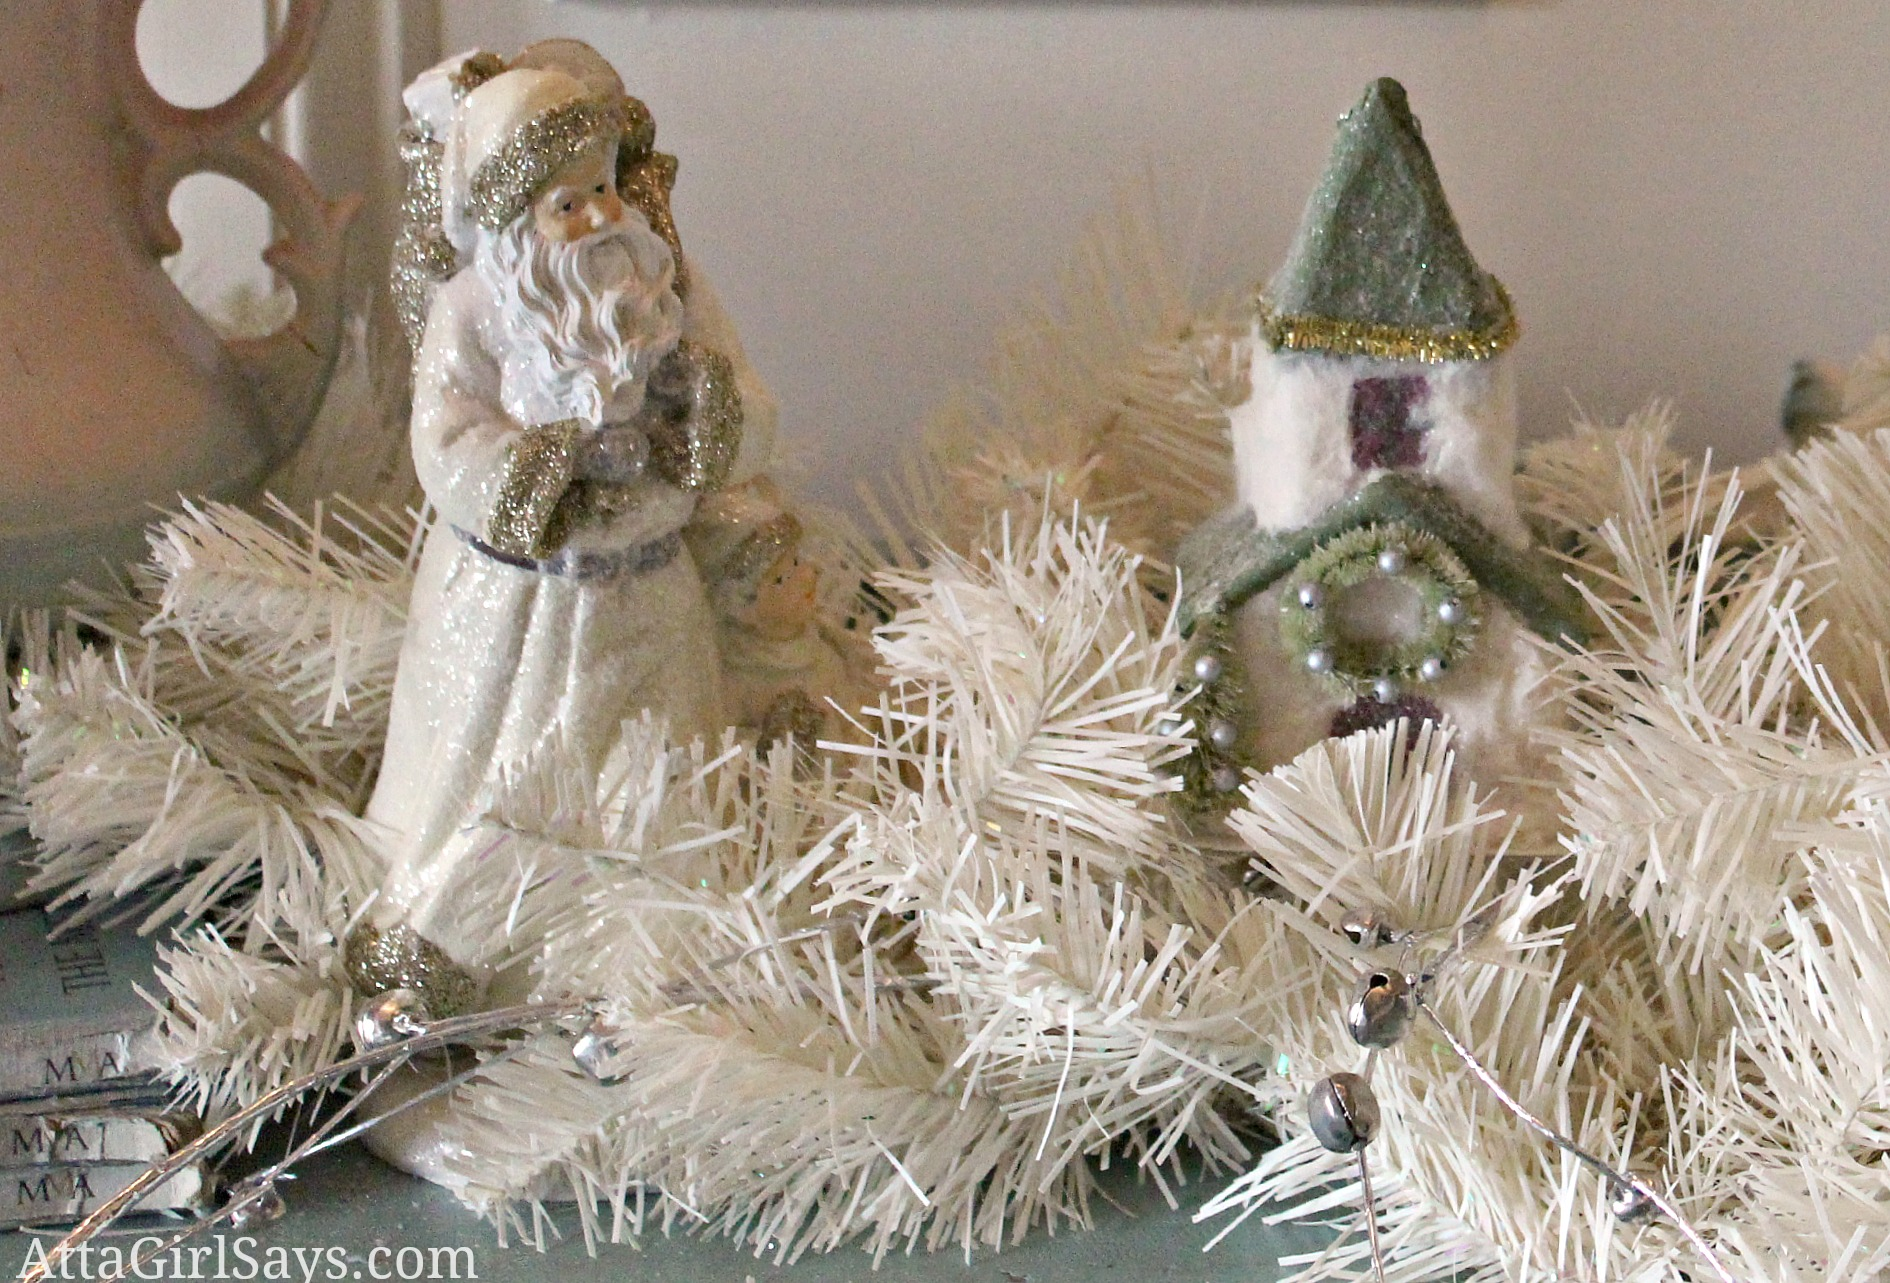 Christmas House Tour 2012: Vintage and Pastel Foyer and Little White Lies